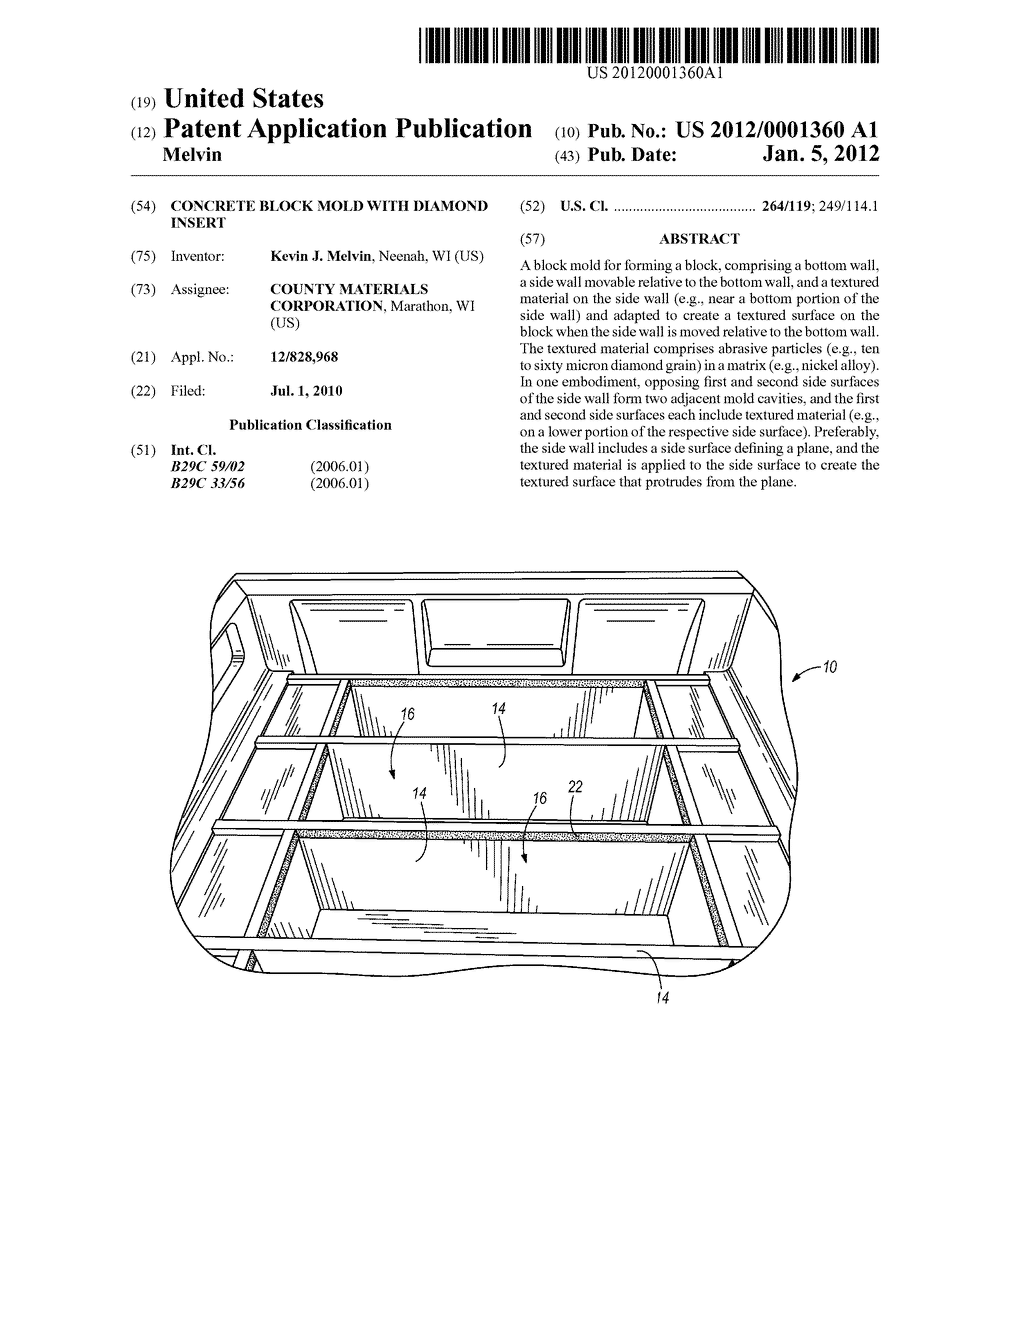 CONCRETE BLOCK MOLD WITH DIAMOND INSERT - diagram, schematic, and image 01